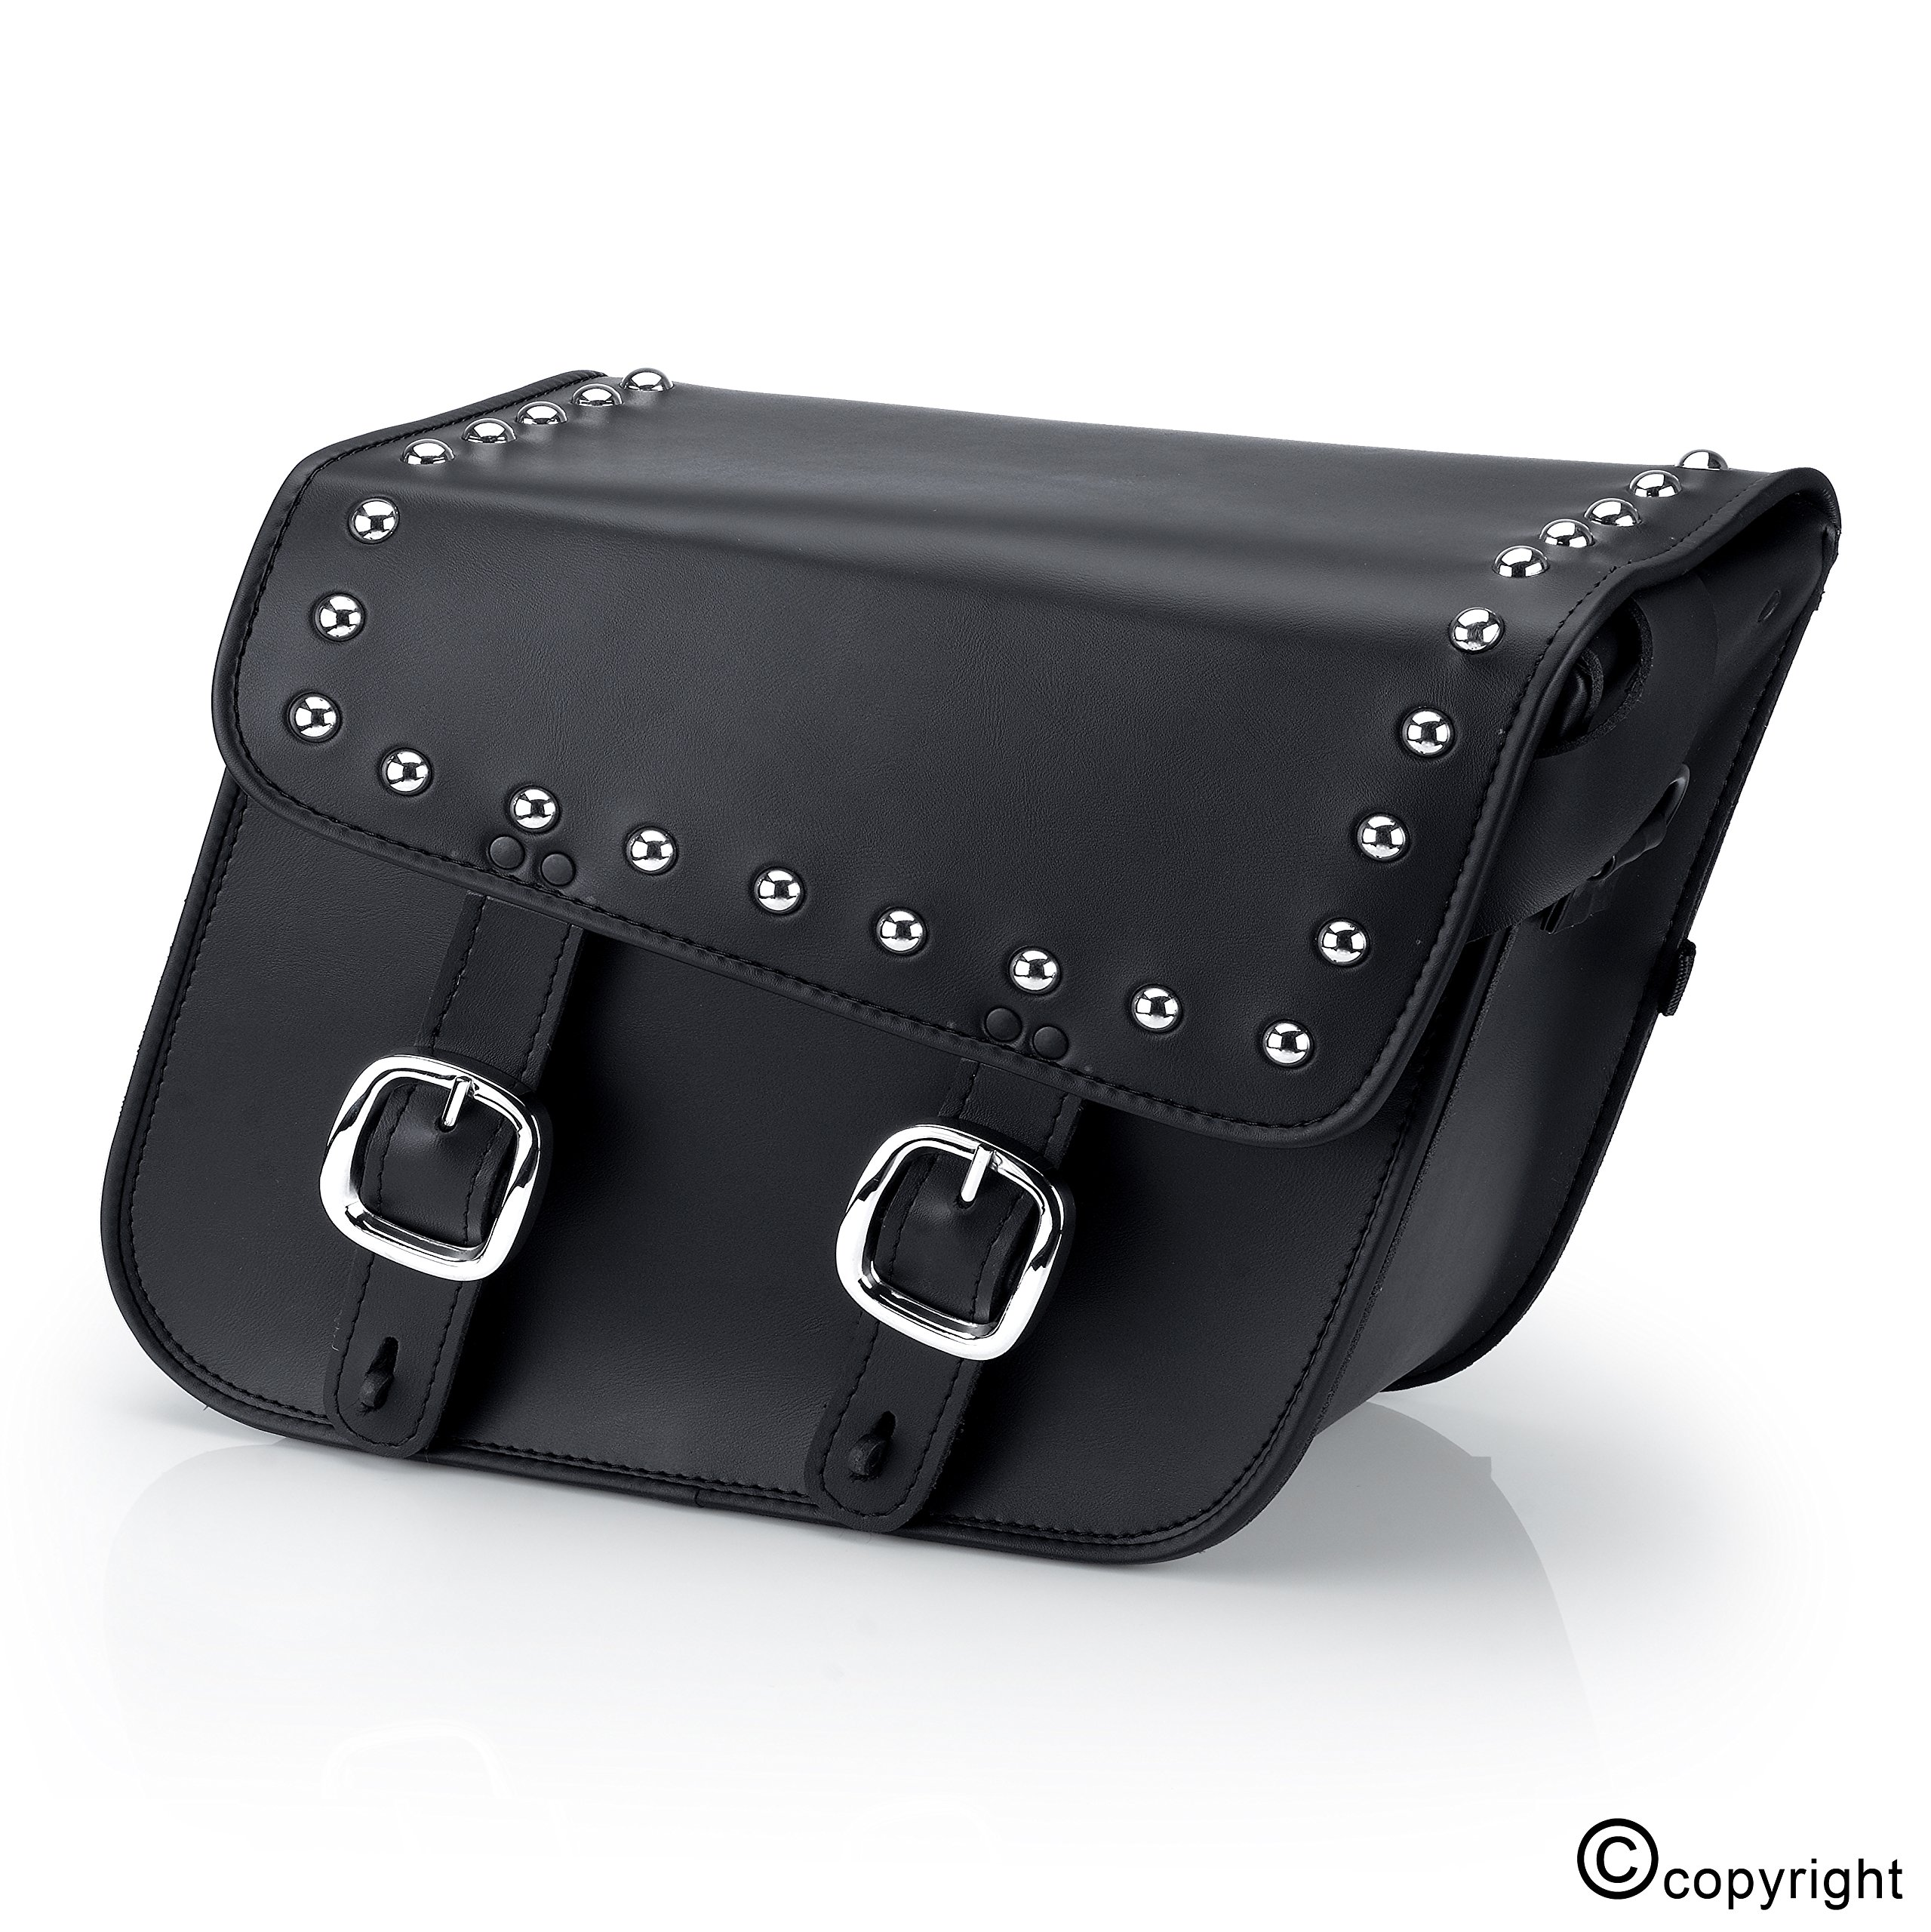 Nomad USA Leather Studded Large Motorcycle Saddlebags w/ Quick Release Buckles by Nomad USA